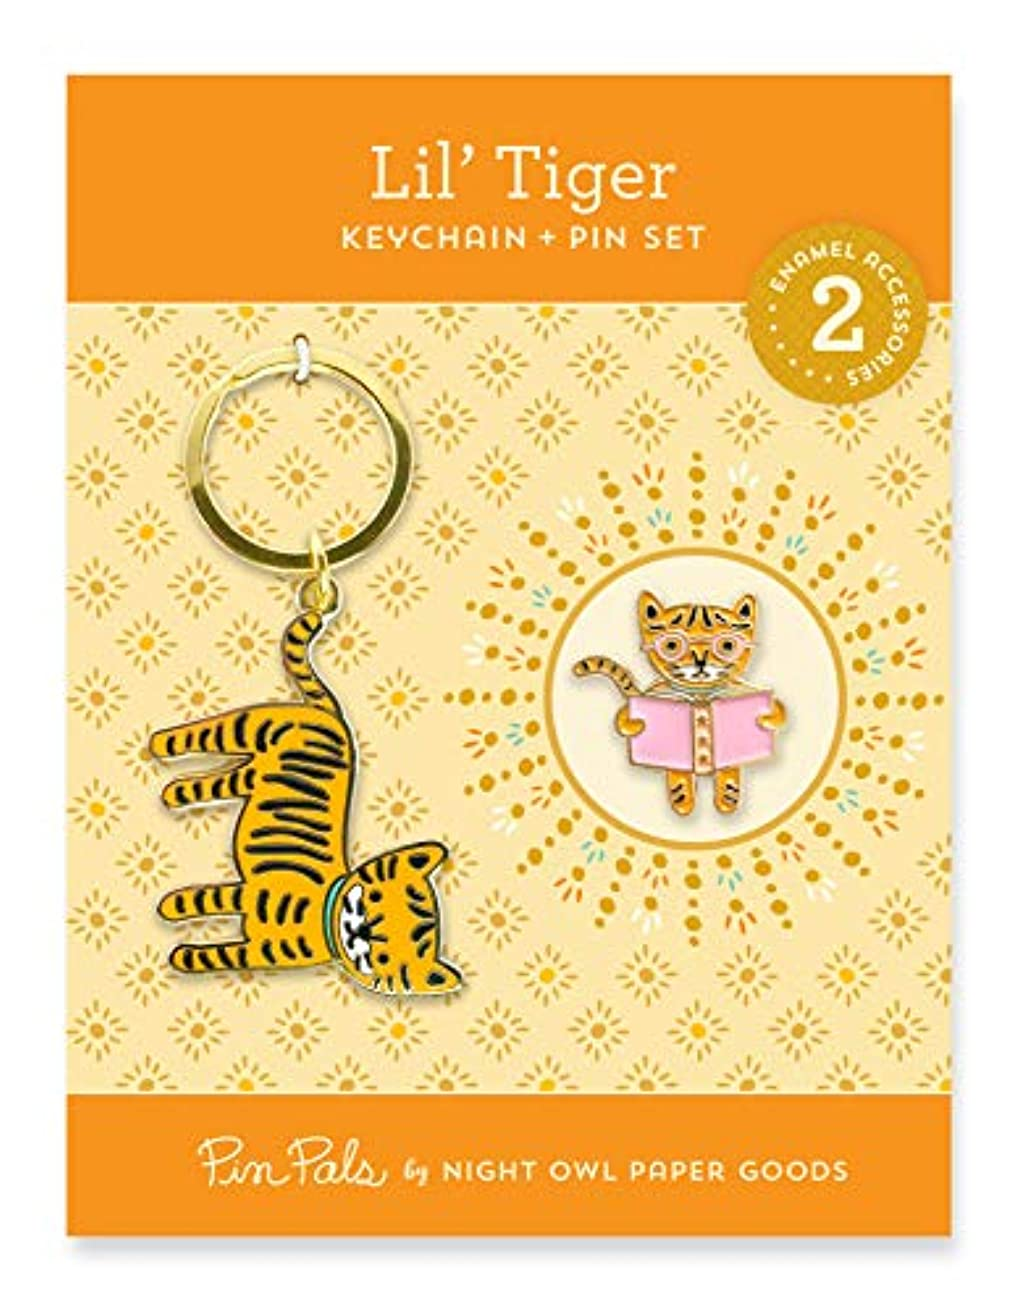 Night Owl Paper Goods Lil' Tiger Keychain & Enamel Pin Gift Set, Gold 2 Piece